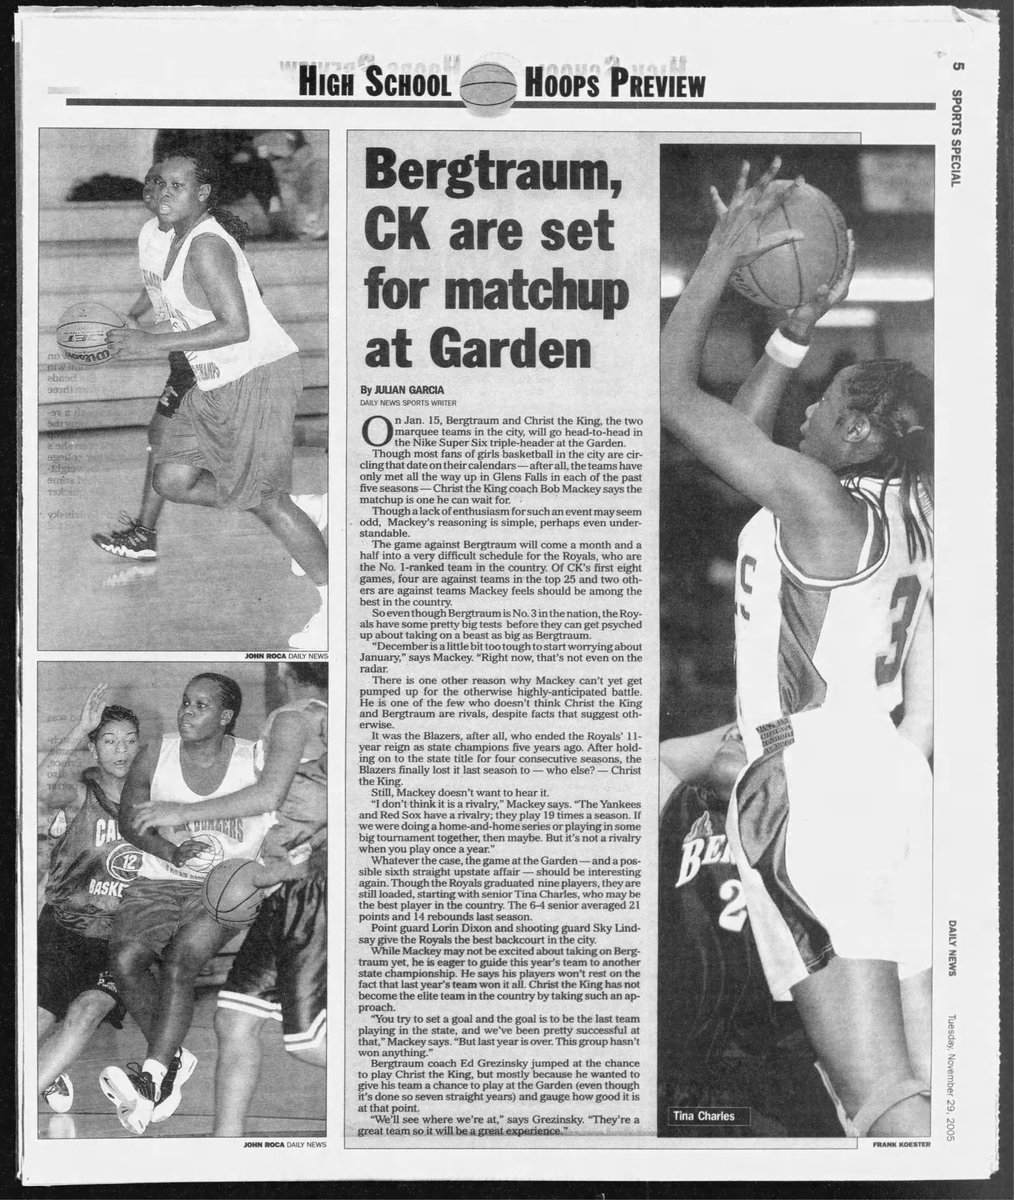 #Flashback Nov. 29th, 2005. The hoopla behind the upcoming matchup at @TheGarden in Jan. 2006 between @ctkwbball and Murry Bergtraum, which had future @wnba pros, such as @Piphdagreat10 and @tinacharles31. https://t.co/83pDb0NLpY